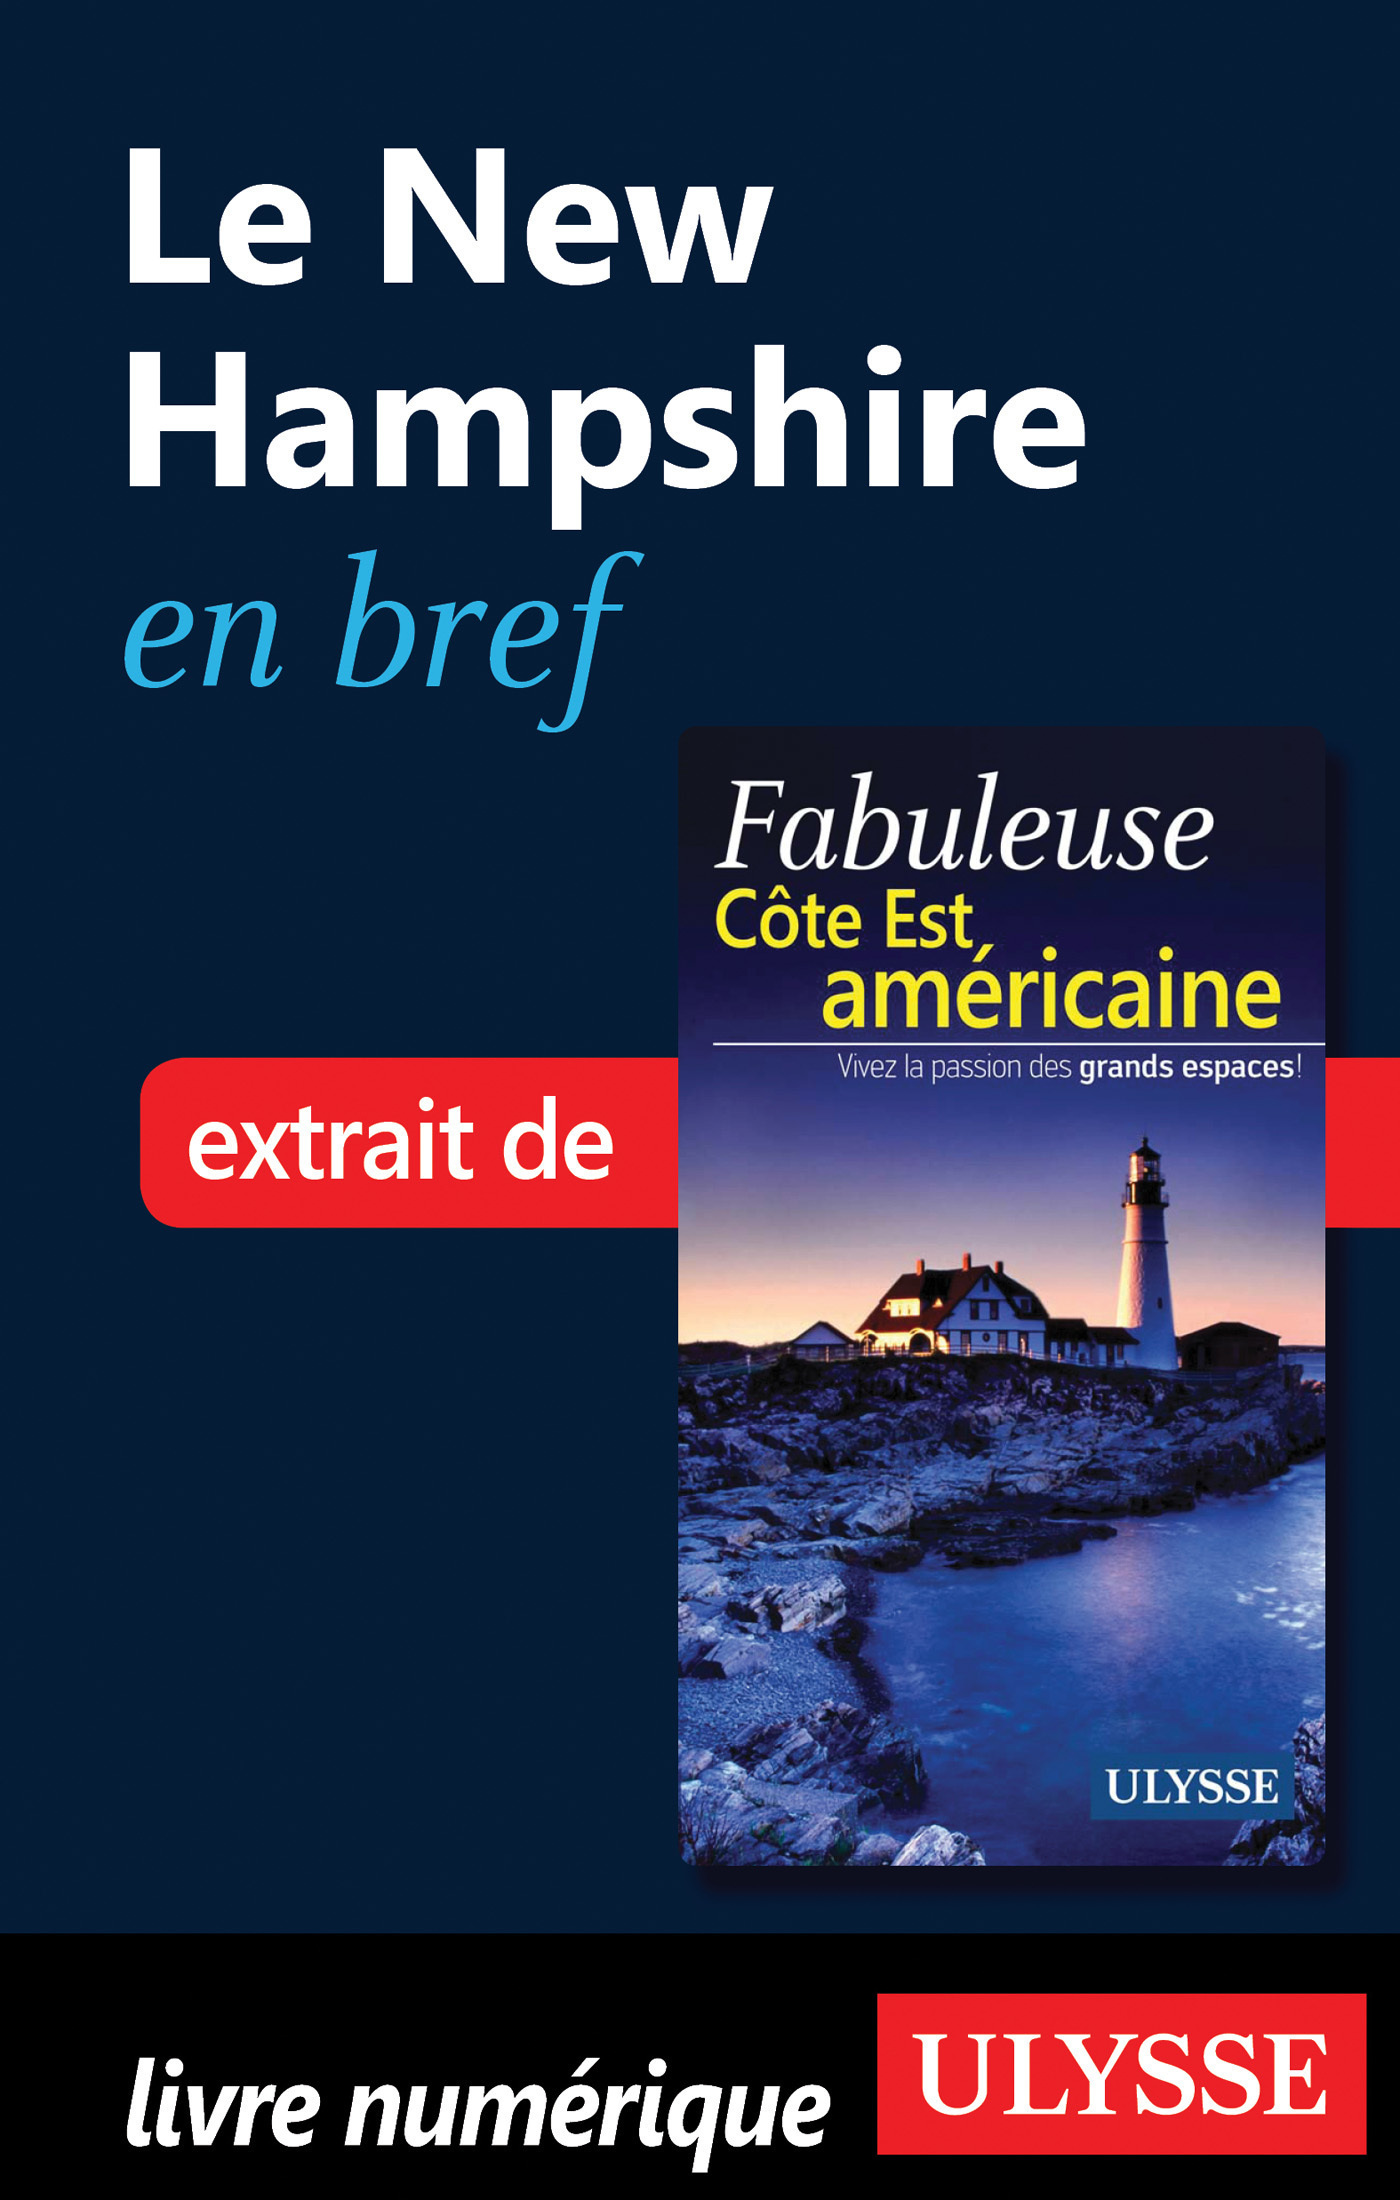 Le New Hampshire en bref